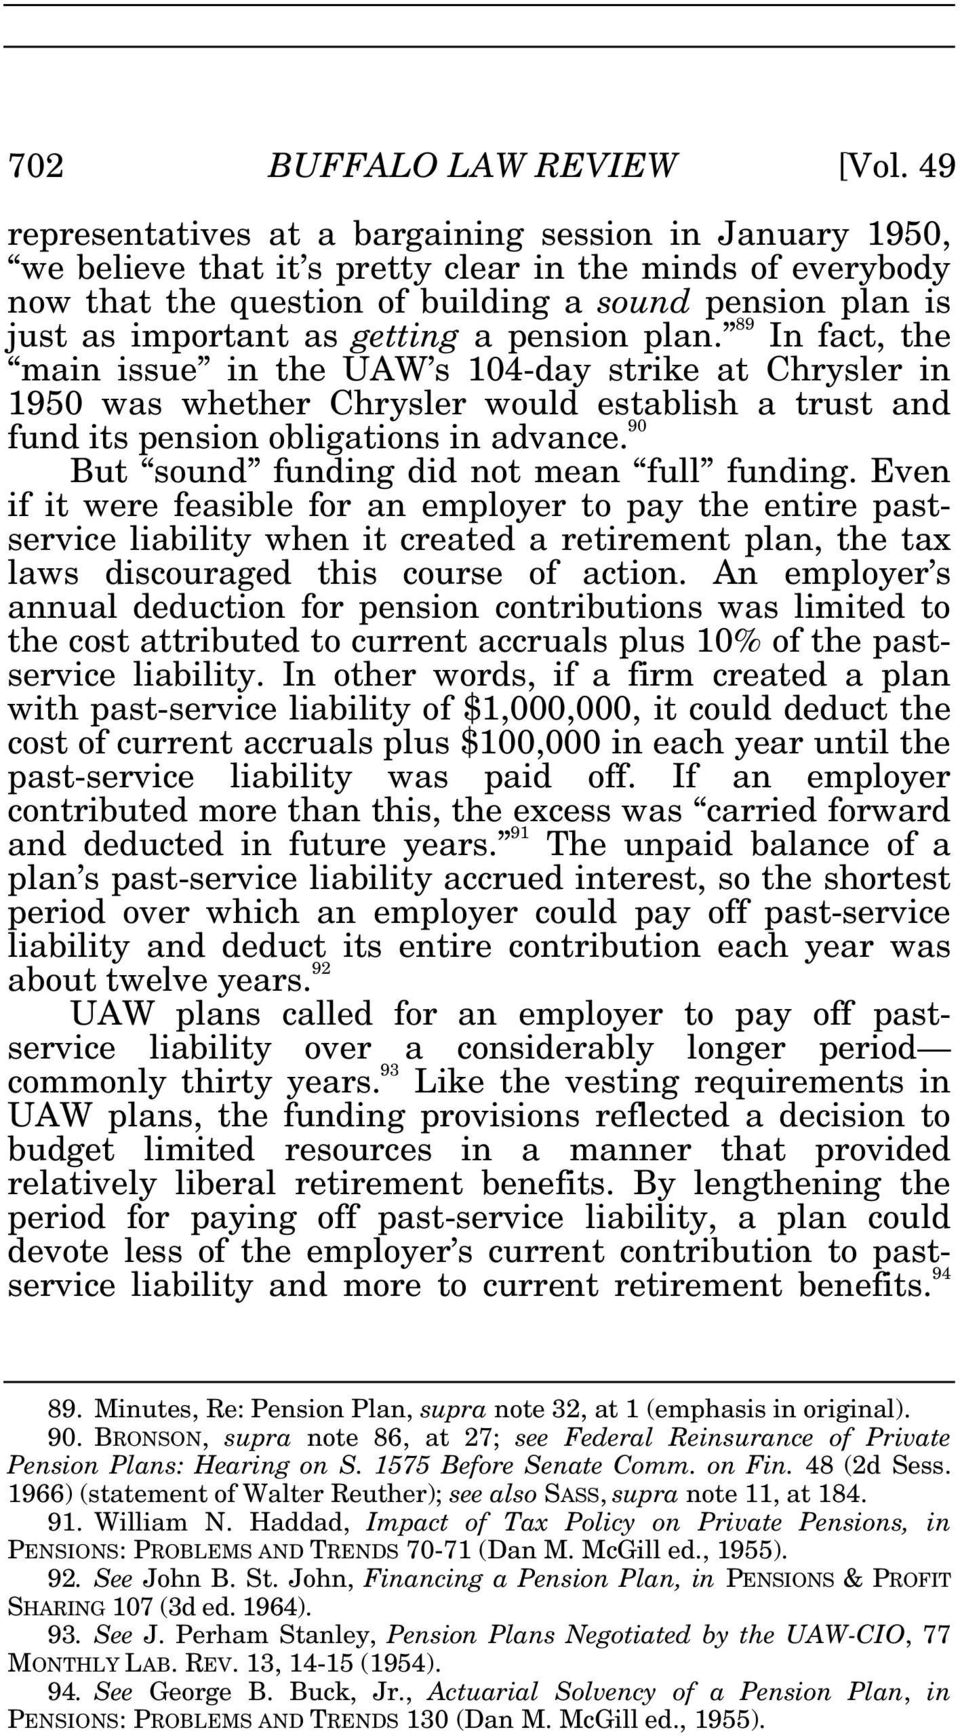 getting a pension plan. 89 In fact, the main issue in the UAW s 104-day strike at Chrysler in 1950 was whether Chrysler would establish a trust and fund its pension obligations in advance.